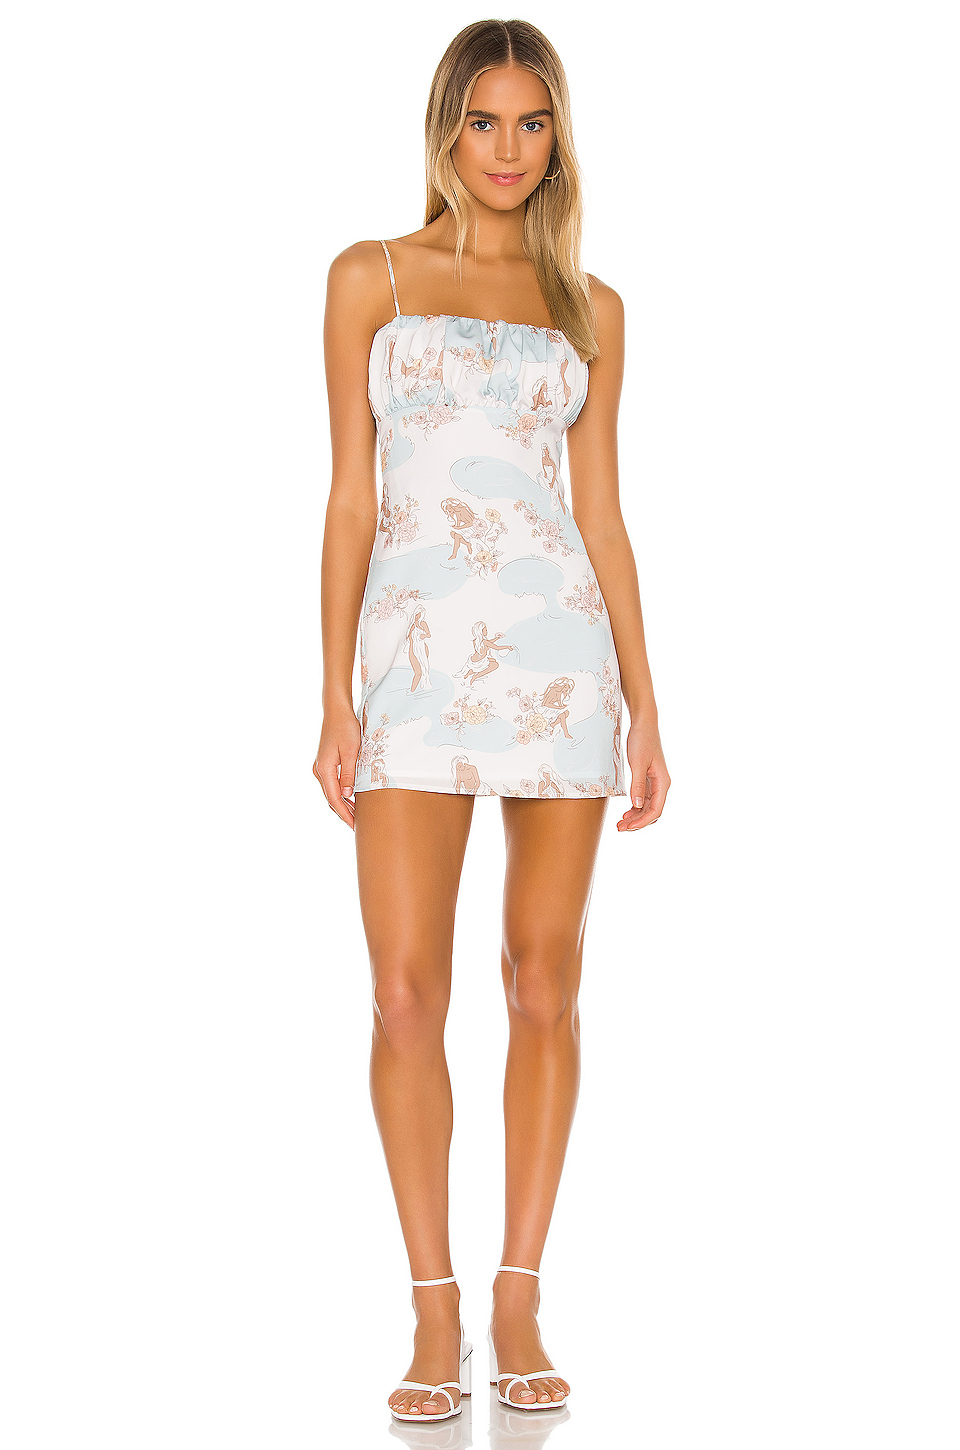 Willow Mini Dress by Song of Style, available on revolve.com for $188 Yovanna Ventura Dress Exact Product